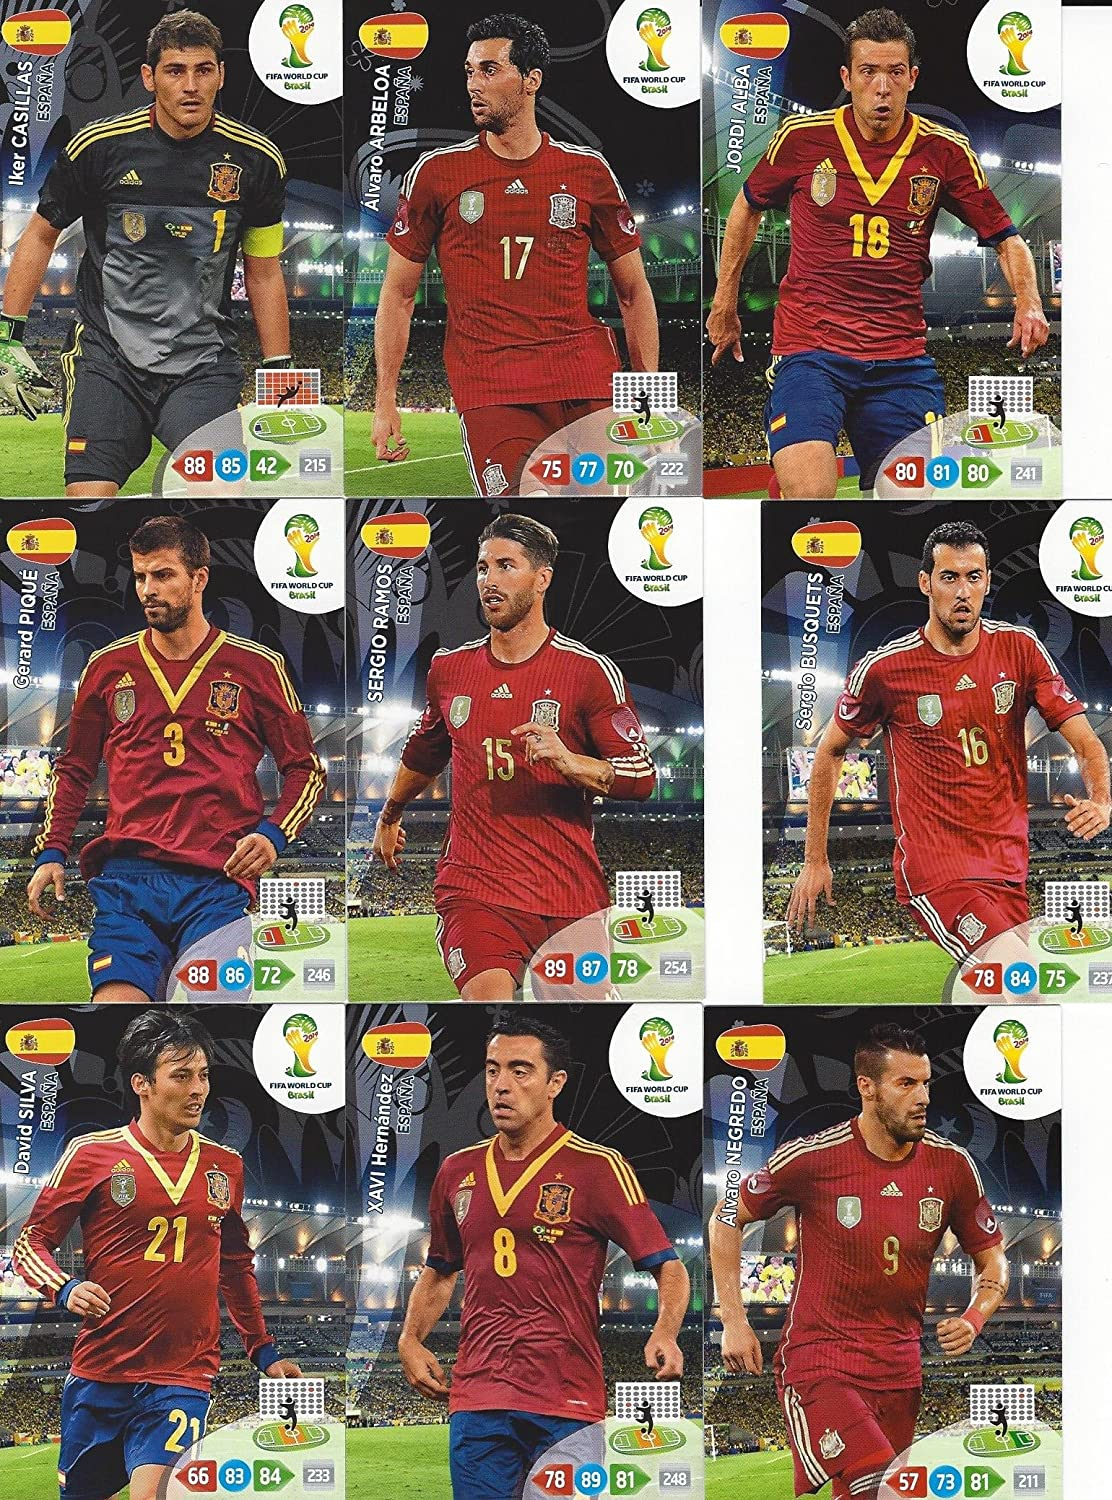 FIFA World Cup 2014 Brazil Adrenalyn XL Spain (Espana) Base Card Team Set: Amazon.es: Juguetes y juegos